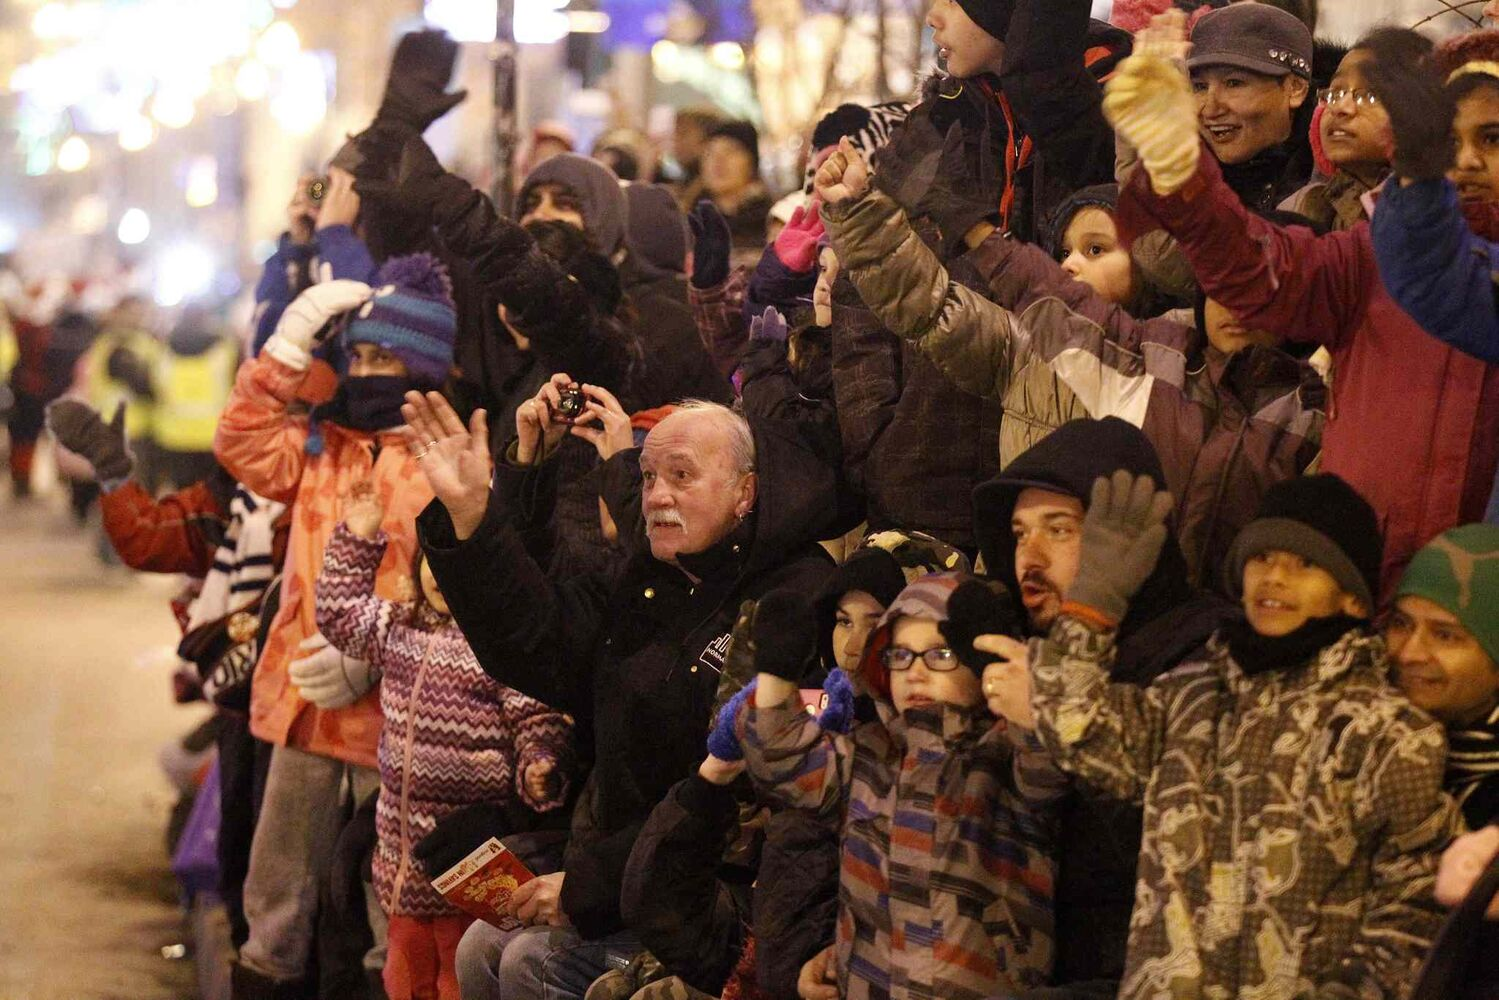 Crowds along Portage Ave. greeted Santa with big smiles and lots of waving. (TREVOR HAGAN / WINNIPEG FREE PRESS)